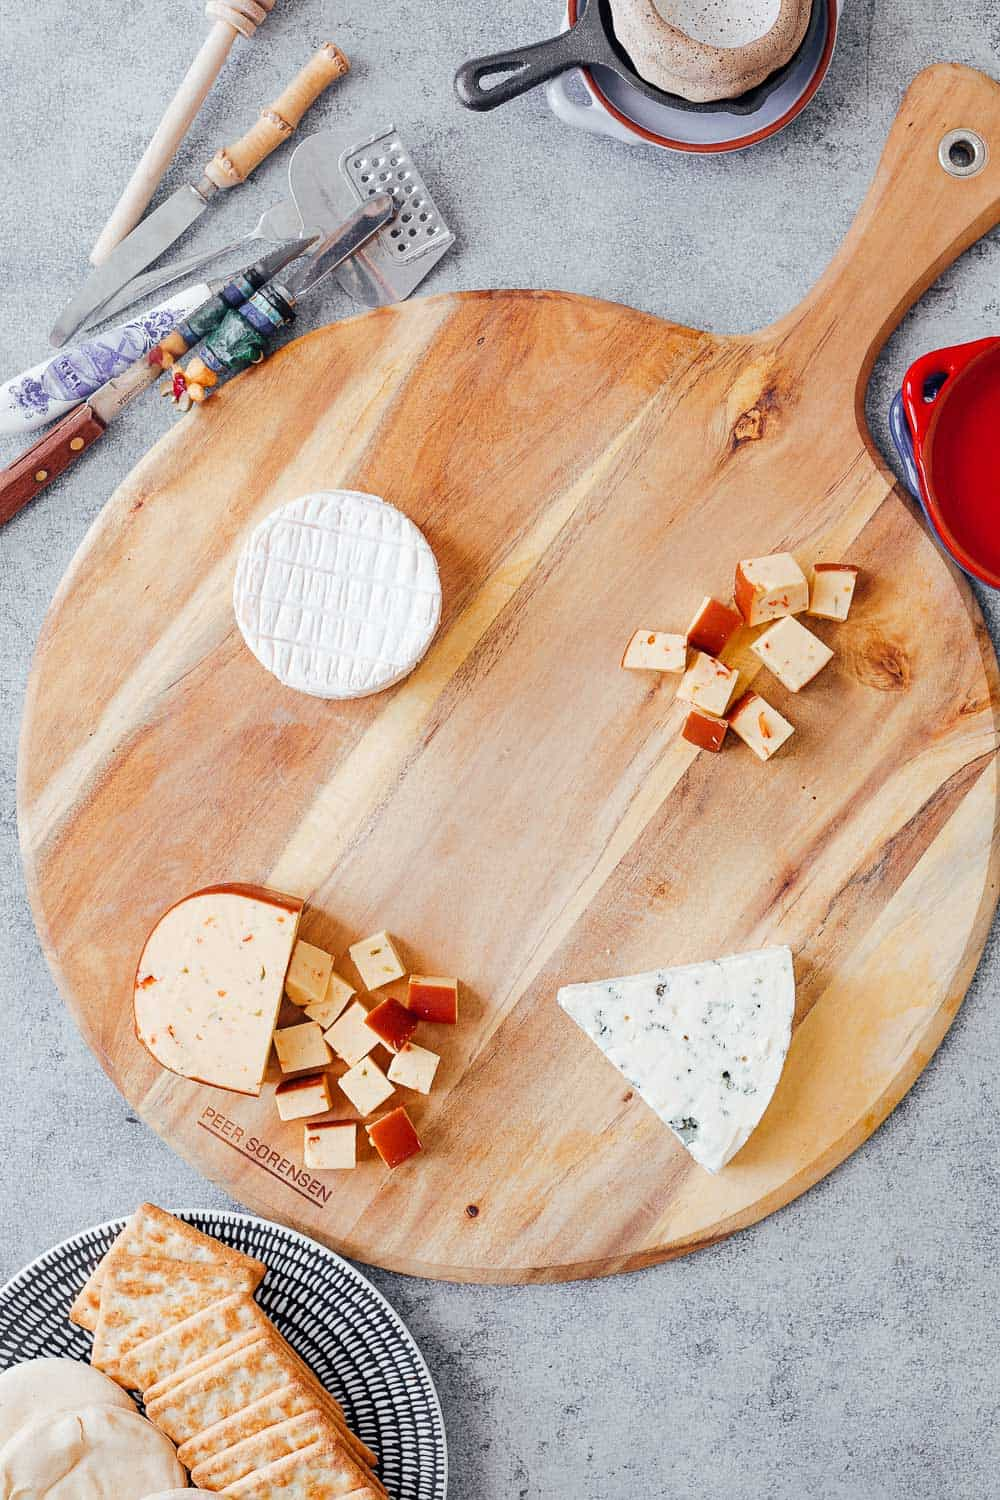 Step #2 to making the ultimate wine and cheese board on a budget is to pick the right cheeses. Pictures here is smoked jalapeno cheddar, brie and danish blue cheese